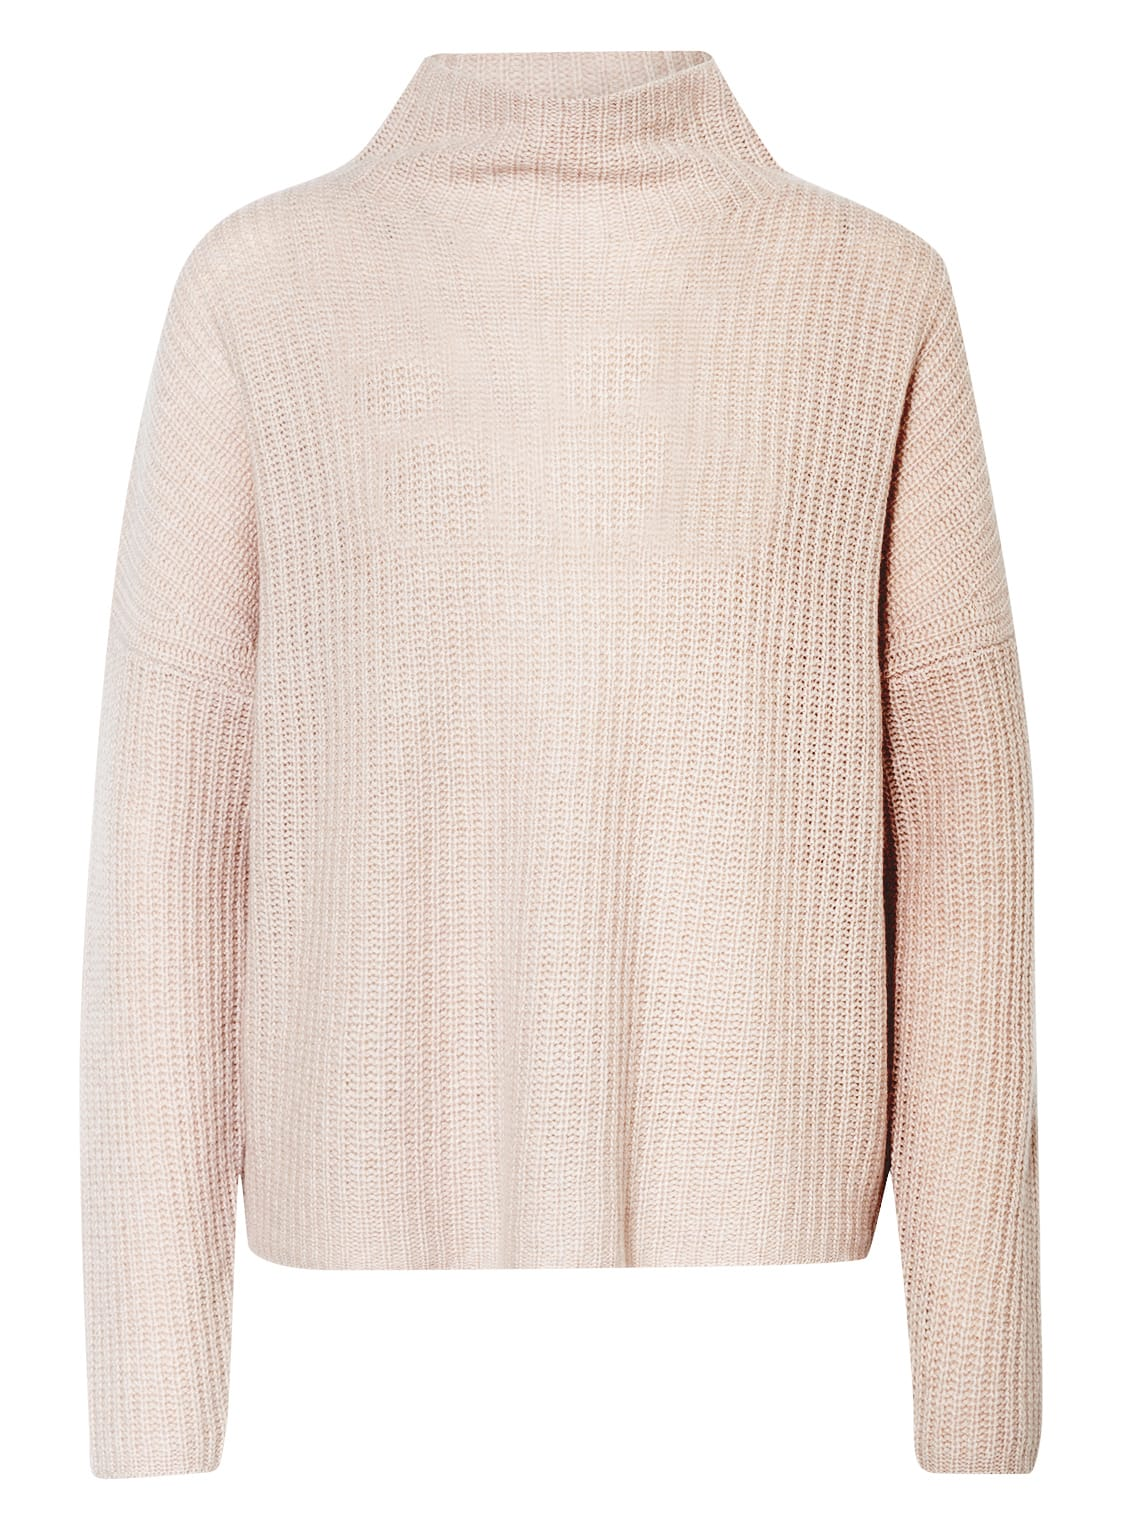 Image of 360cashmere Cashmere-Pullover beige